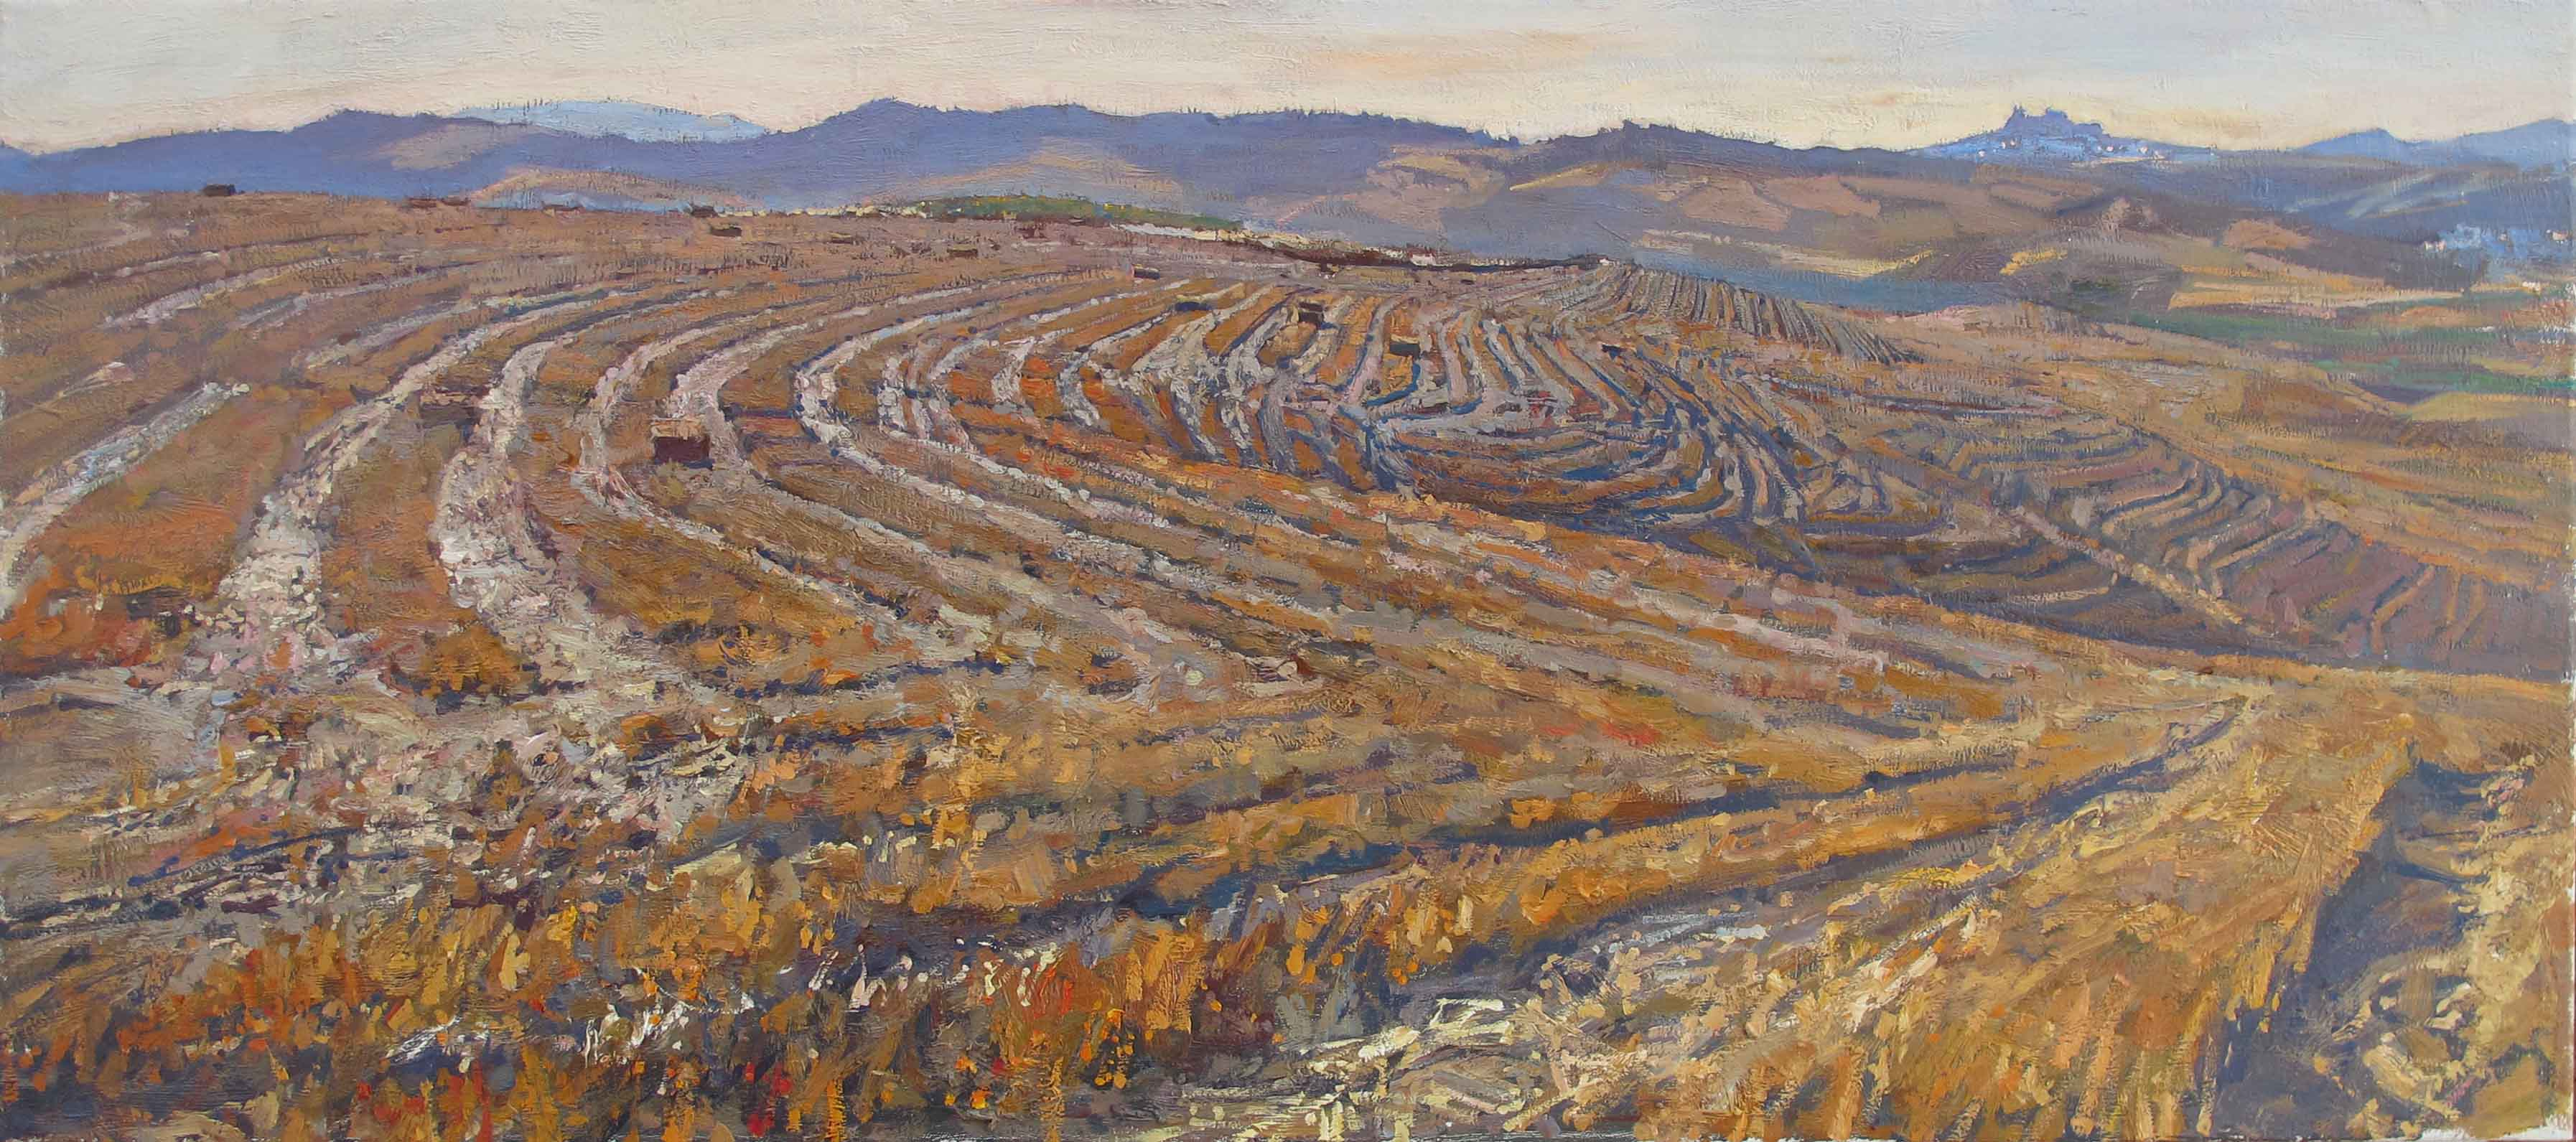 Antonio's Fields, I by  Daud Akhriev - Masterpiece Online